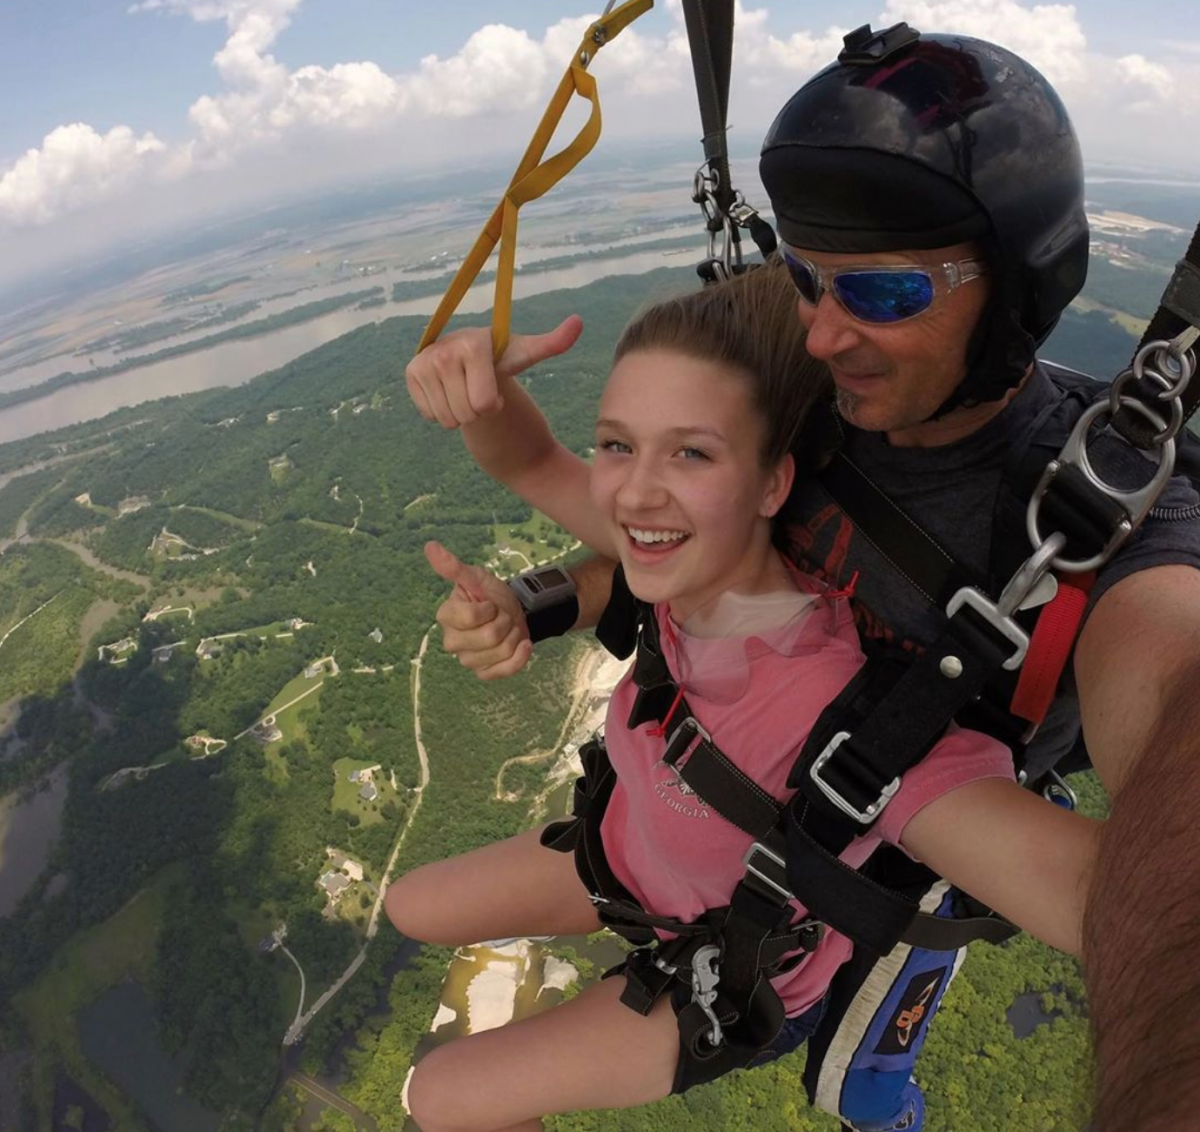 Girl smiling while parachuting down after a tandem skydive at Skydive St Louis